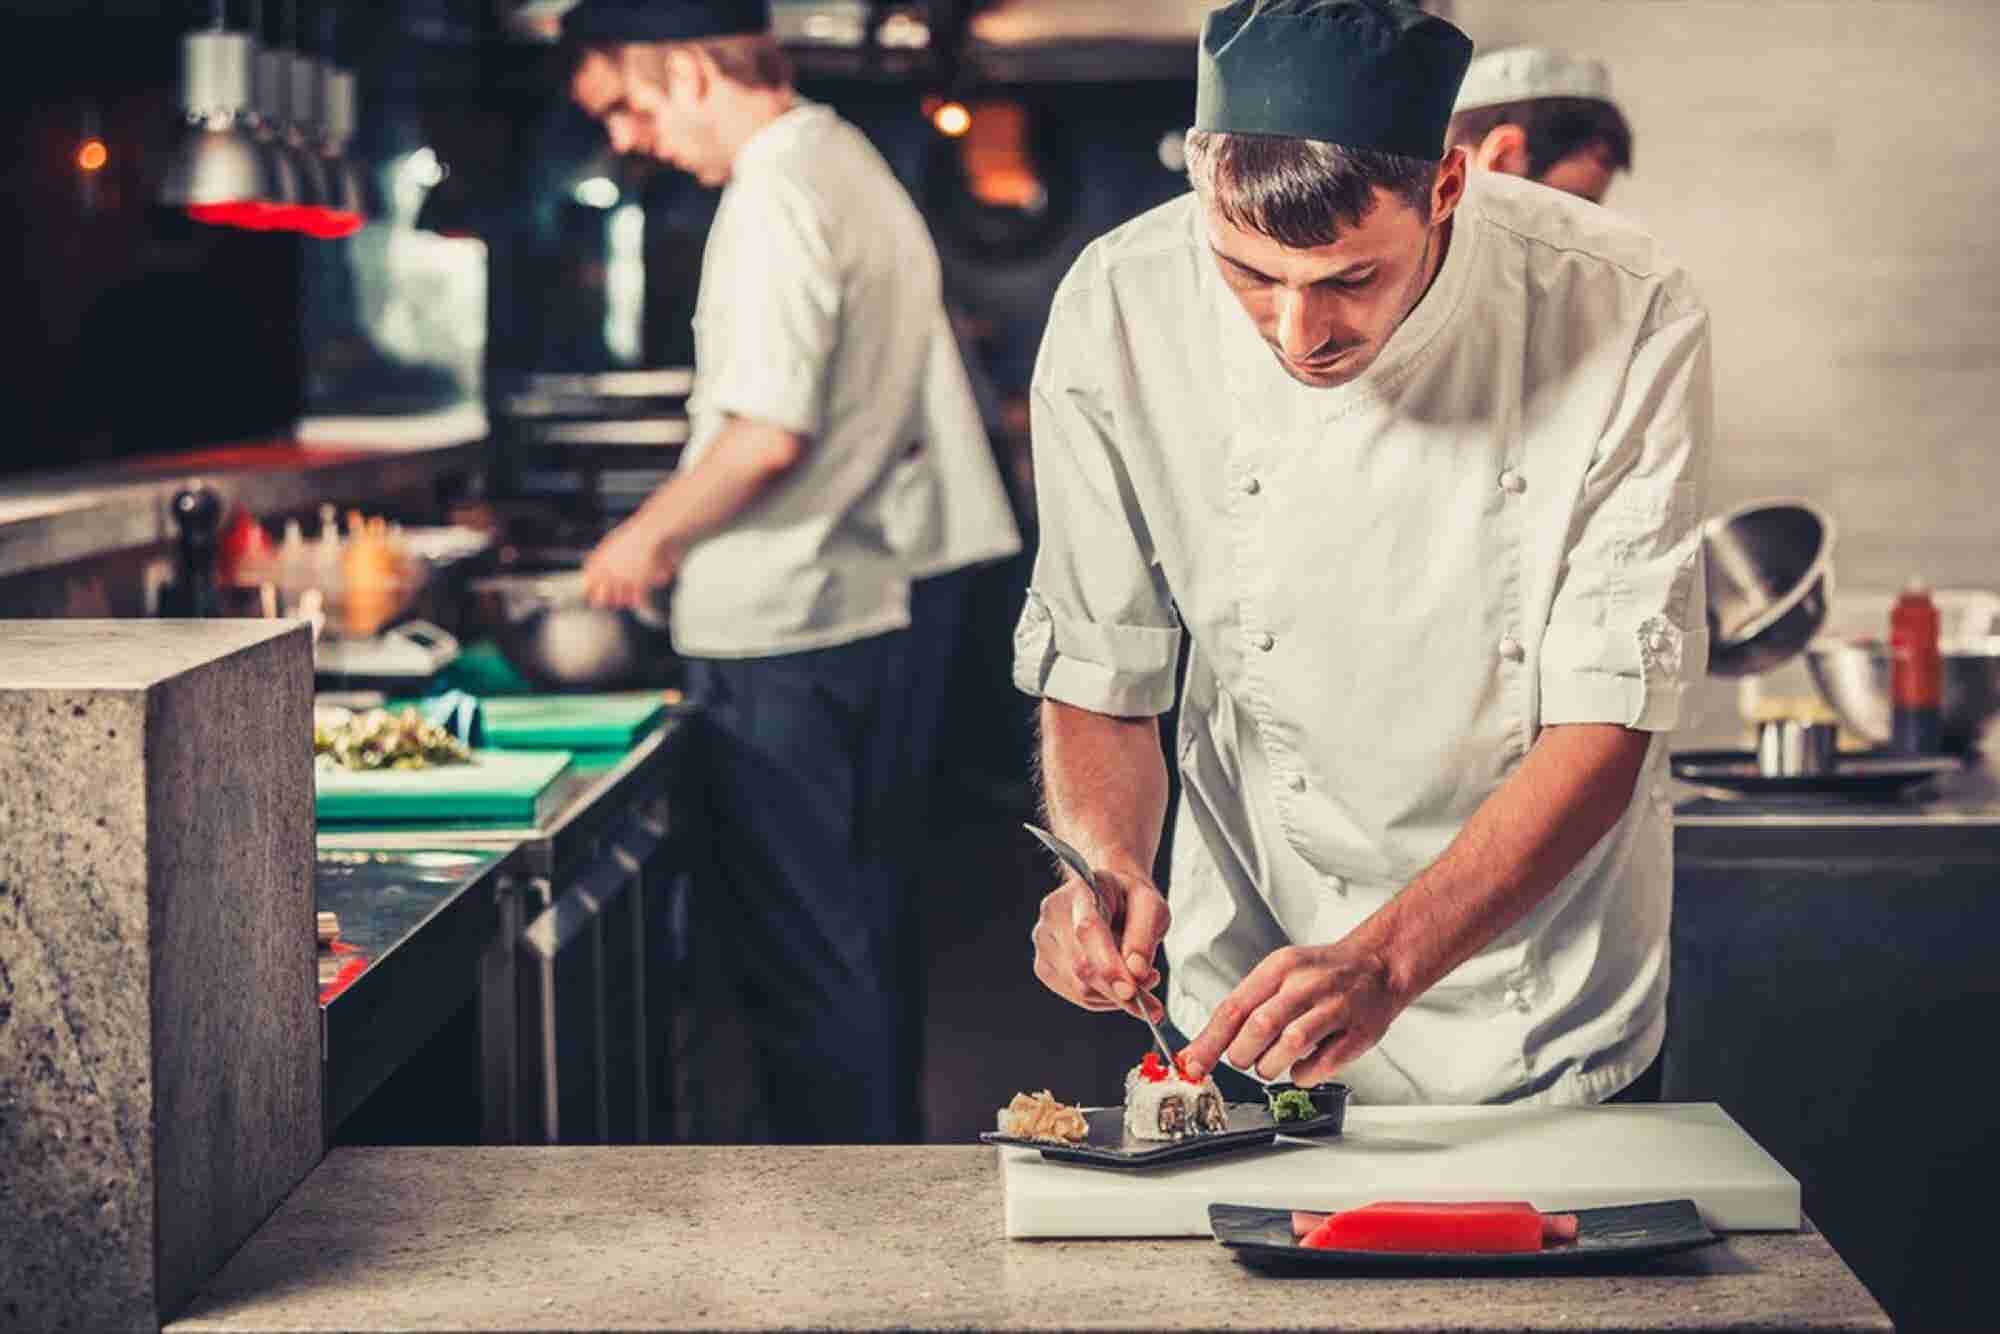 Your Restaurant Needs These 3 Things to Thrive